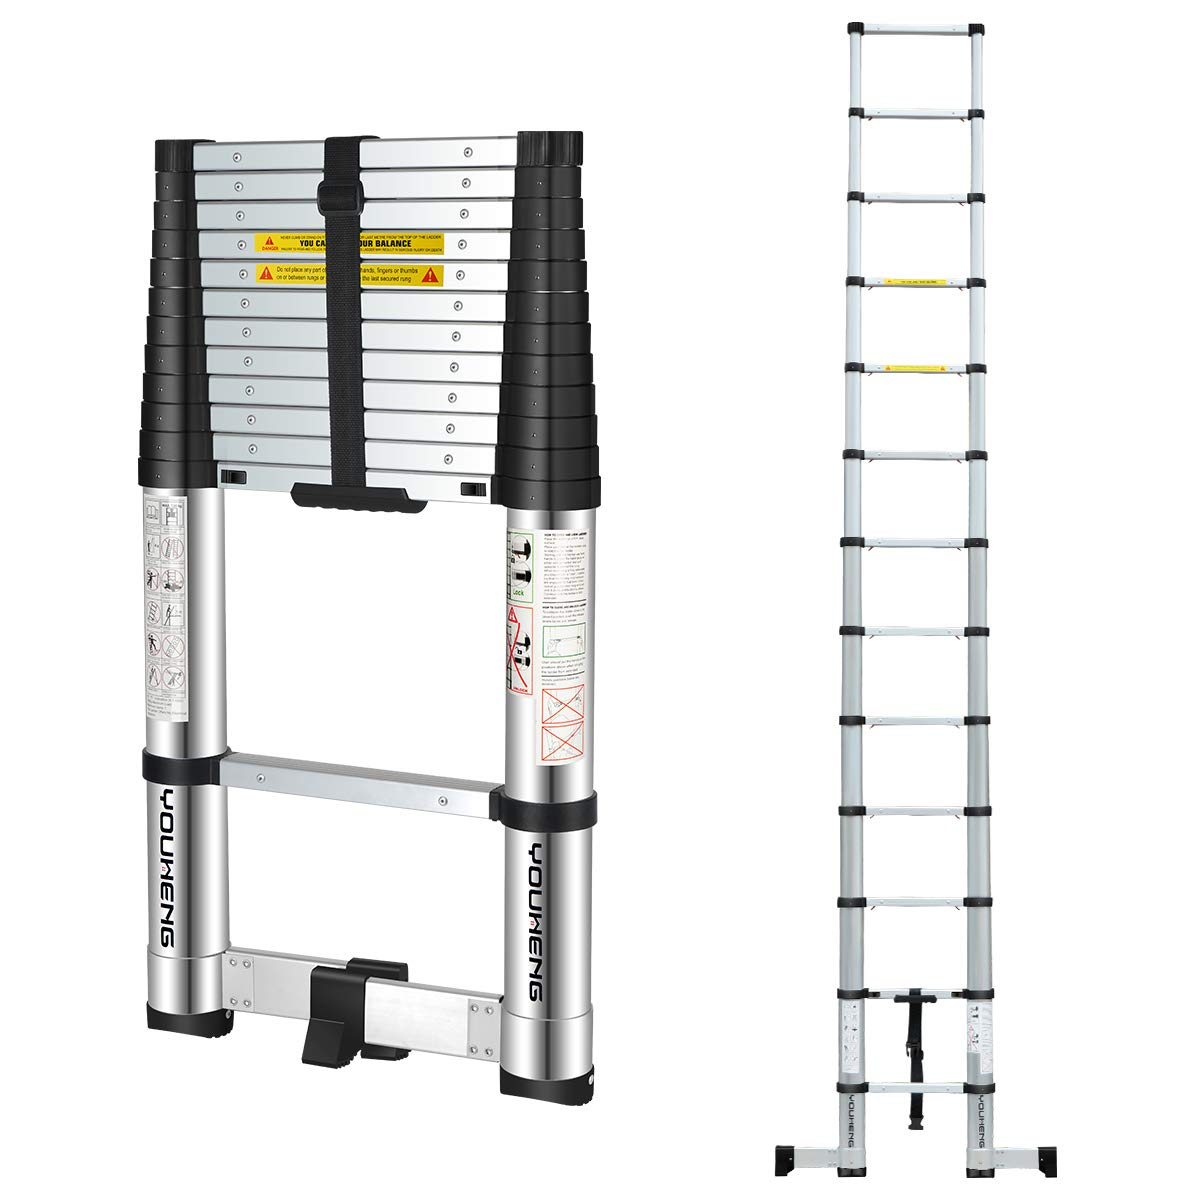 YouHeng Telescoping Ladder with Rotary Stabilizer Bar,ONE-BUTTON RETRACTION Design 12.5FT Telescopic Extension Step Ladder,EN131 Certified Compact Ladder for Household Daily or Hobbies,330 Lb Capacity